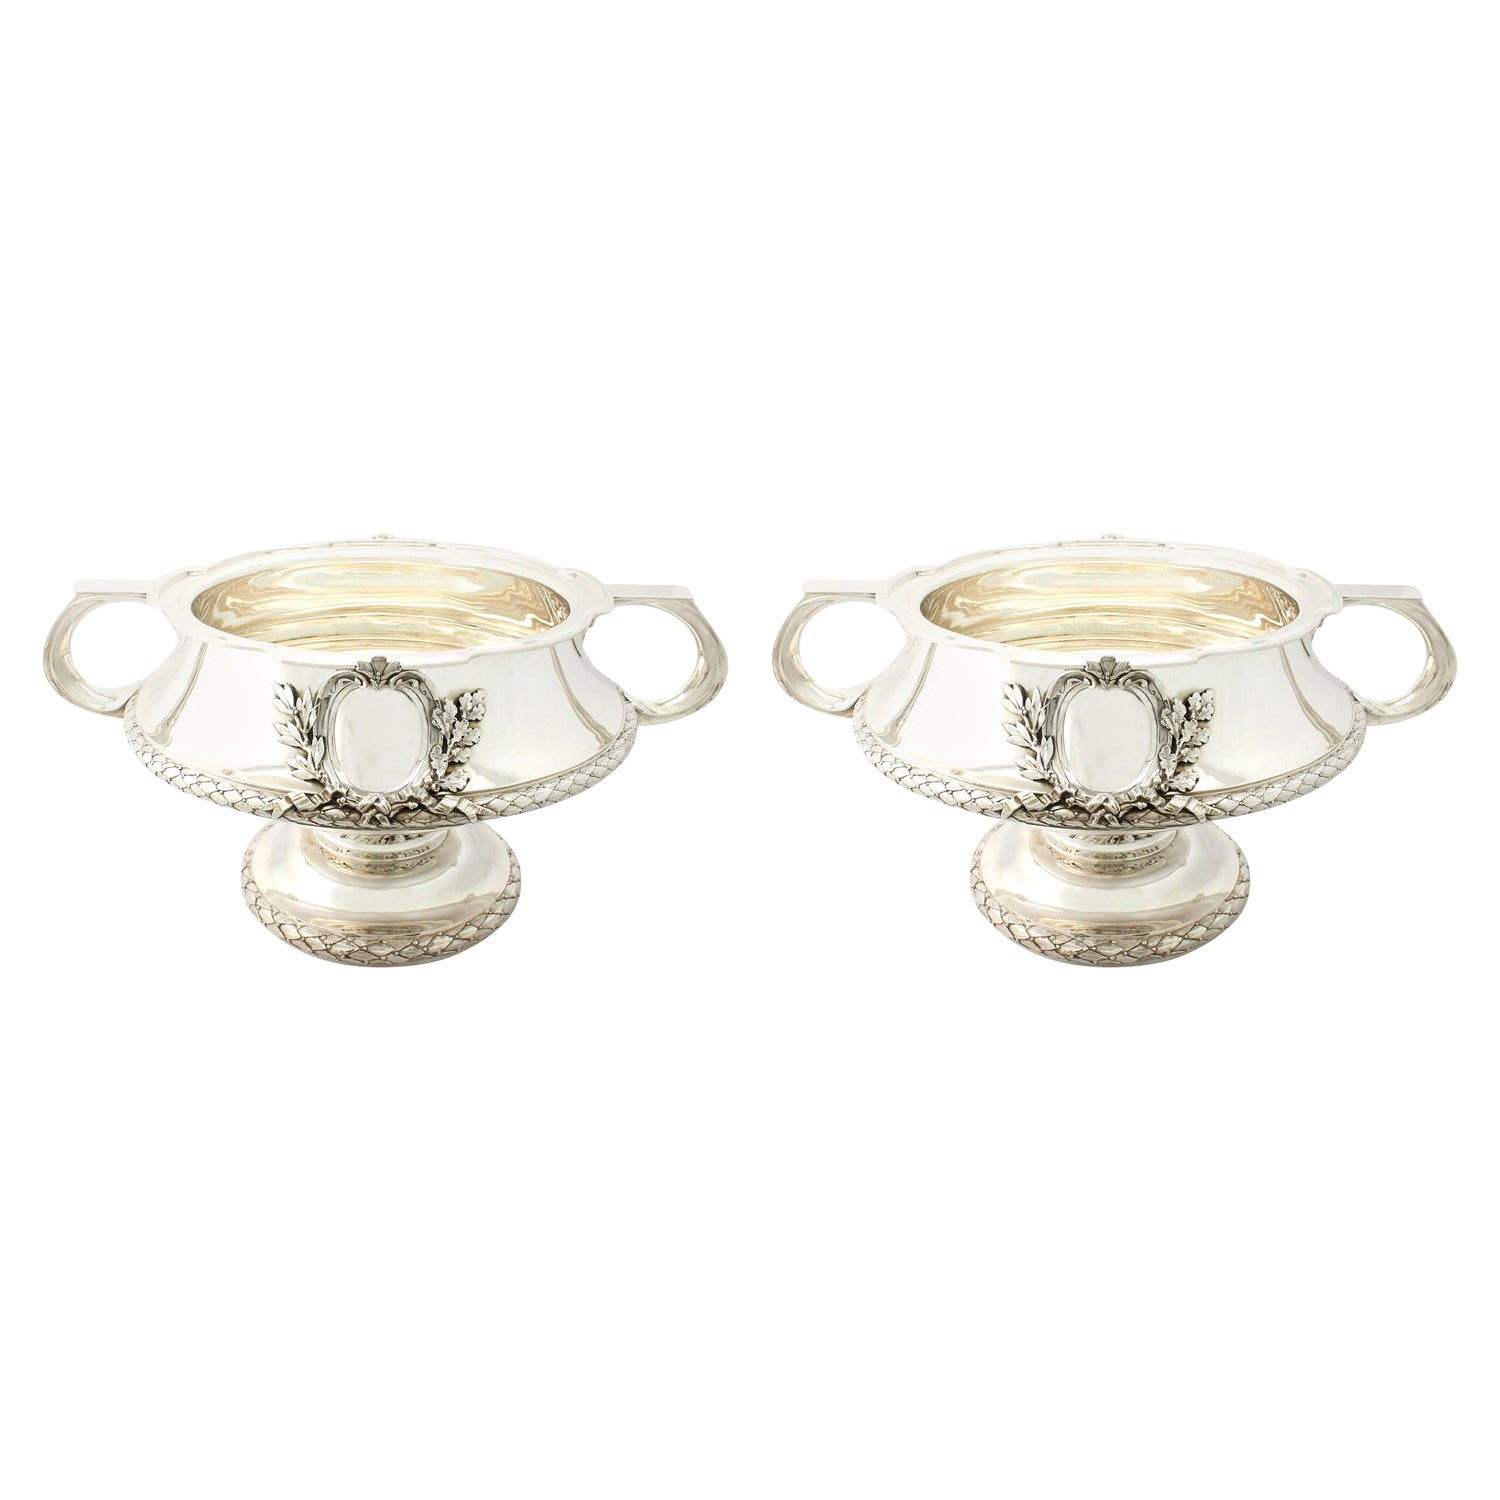 Antique Pair of George V 1910s Sterling Silver Bowls / Centrepieces